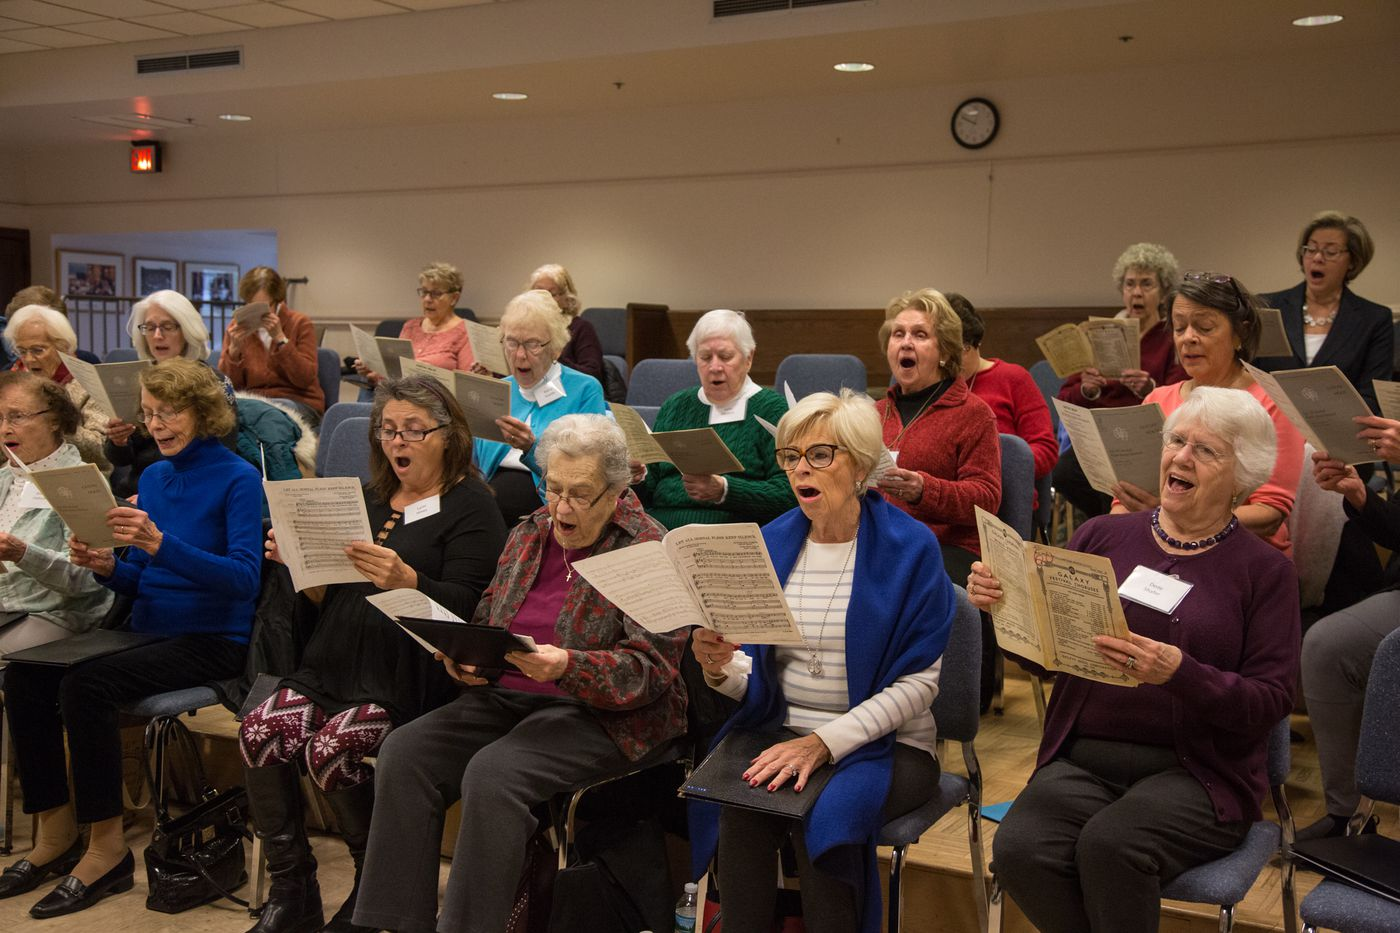 The members of the Singing for Life choir join together for their weekly choral practice at Bryn Mawr Presbyterian Church. EMILY COHEN / For the Inquirer